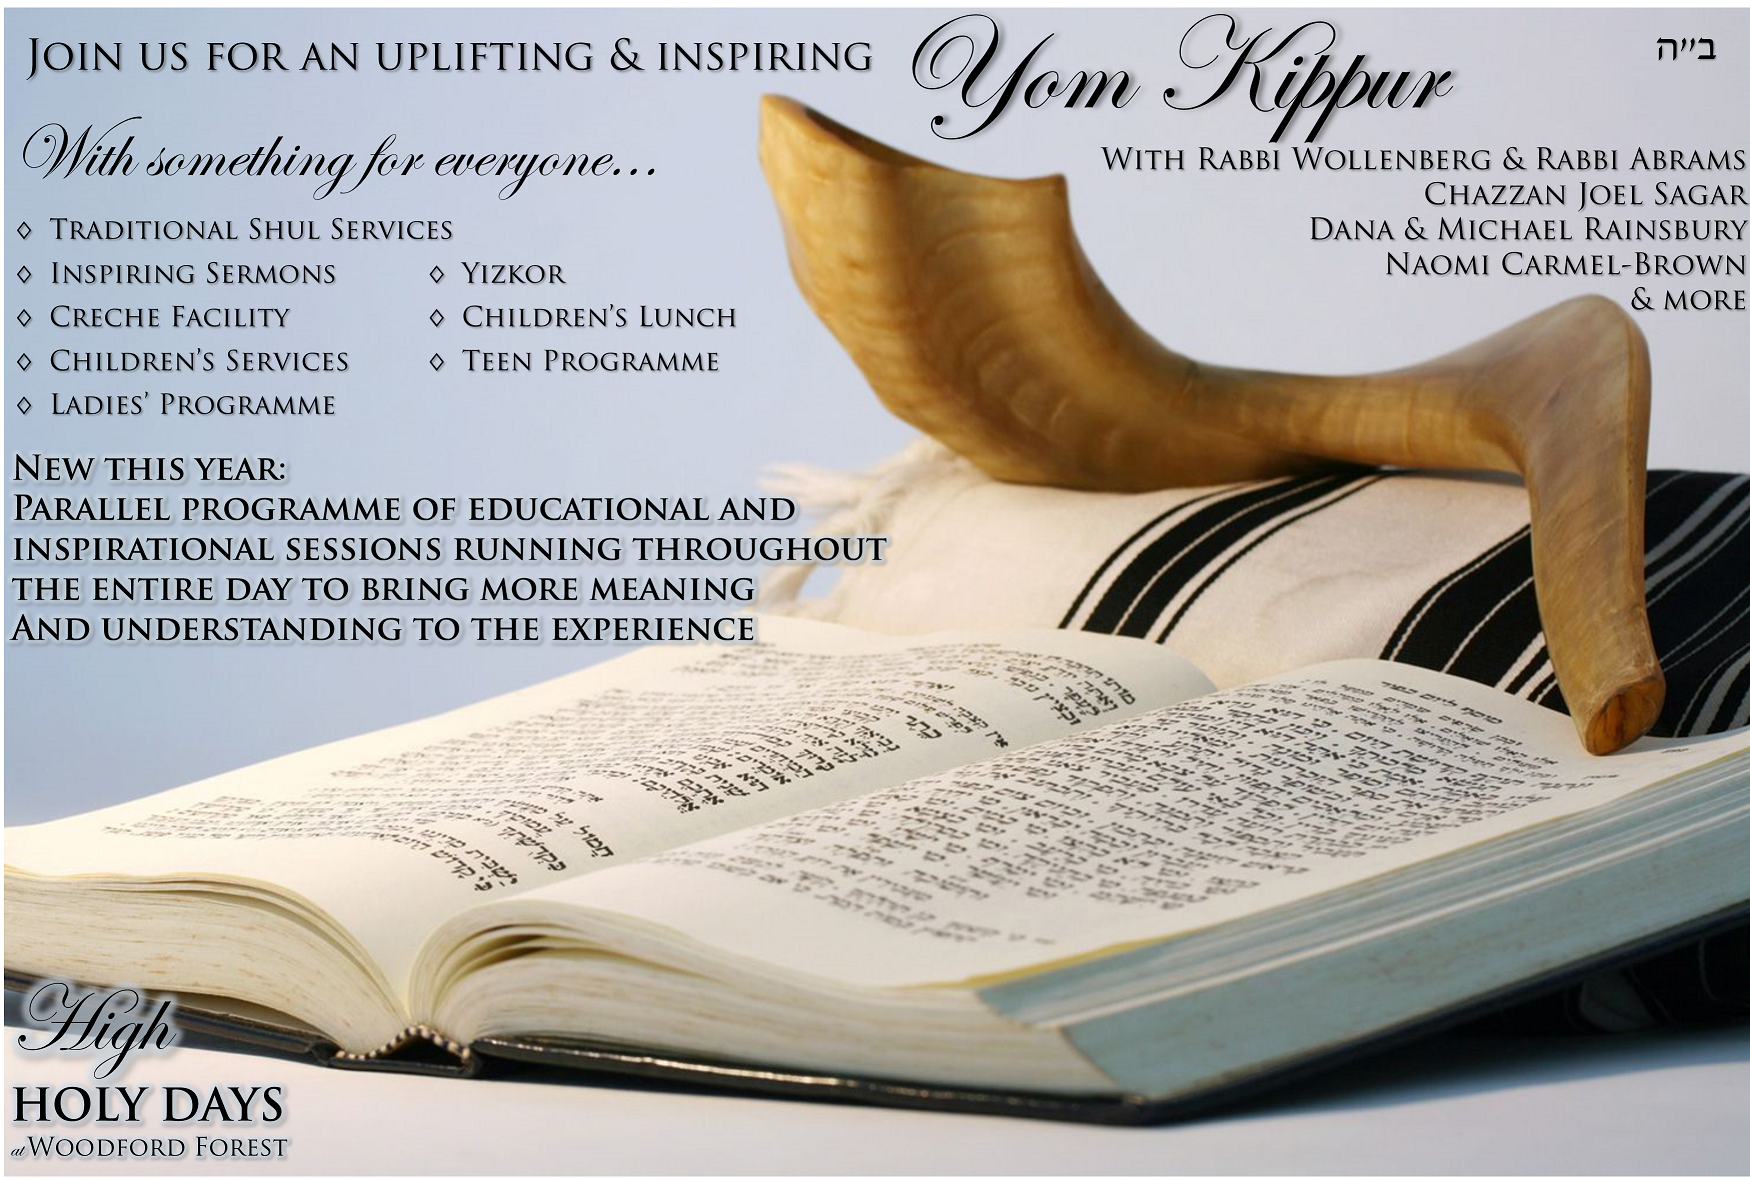 Yom Kippur Day of Atonement High Holidays Laws teshuva customs and inspiring videos and articles